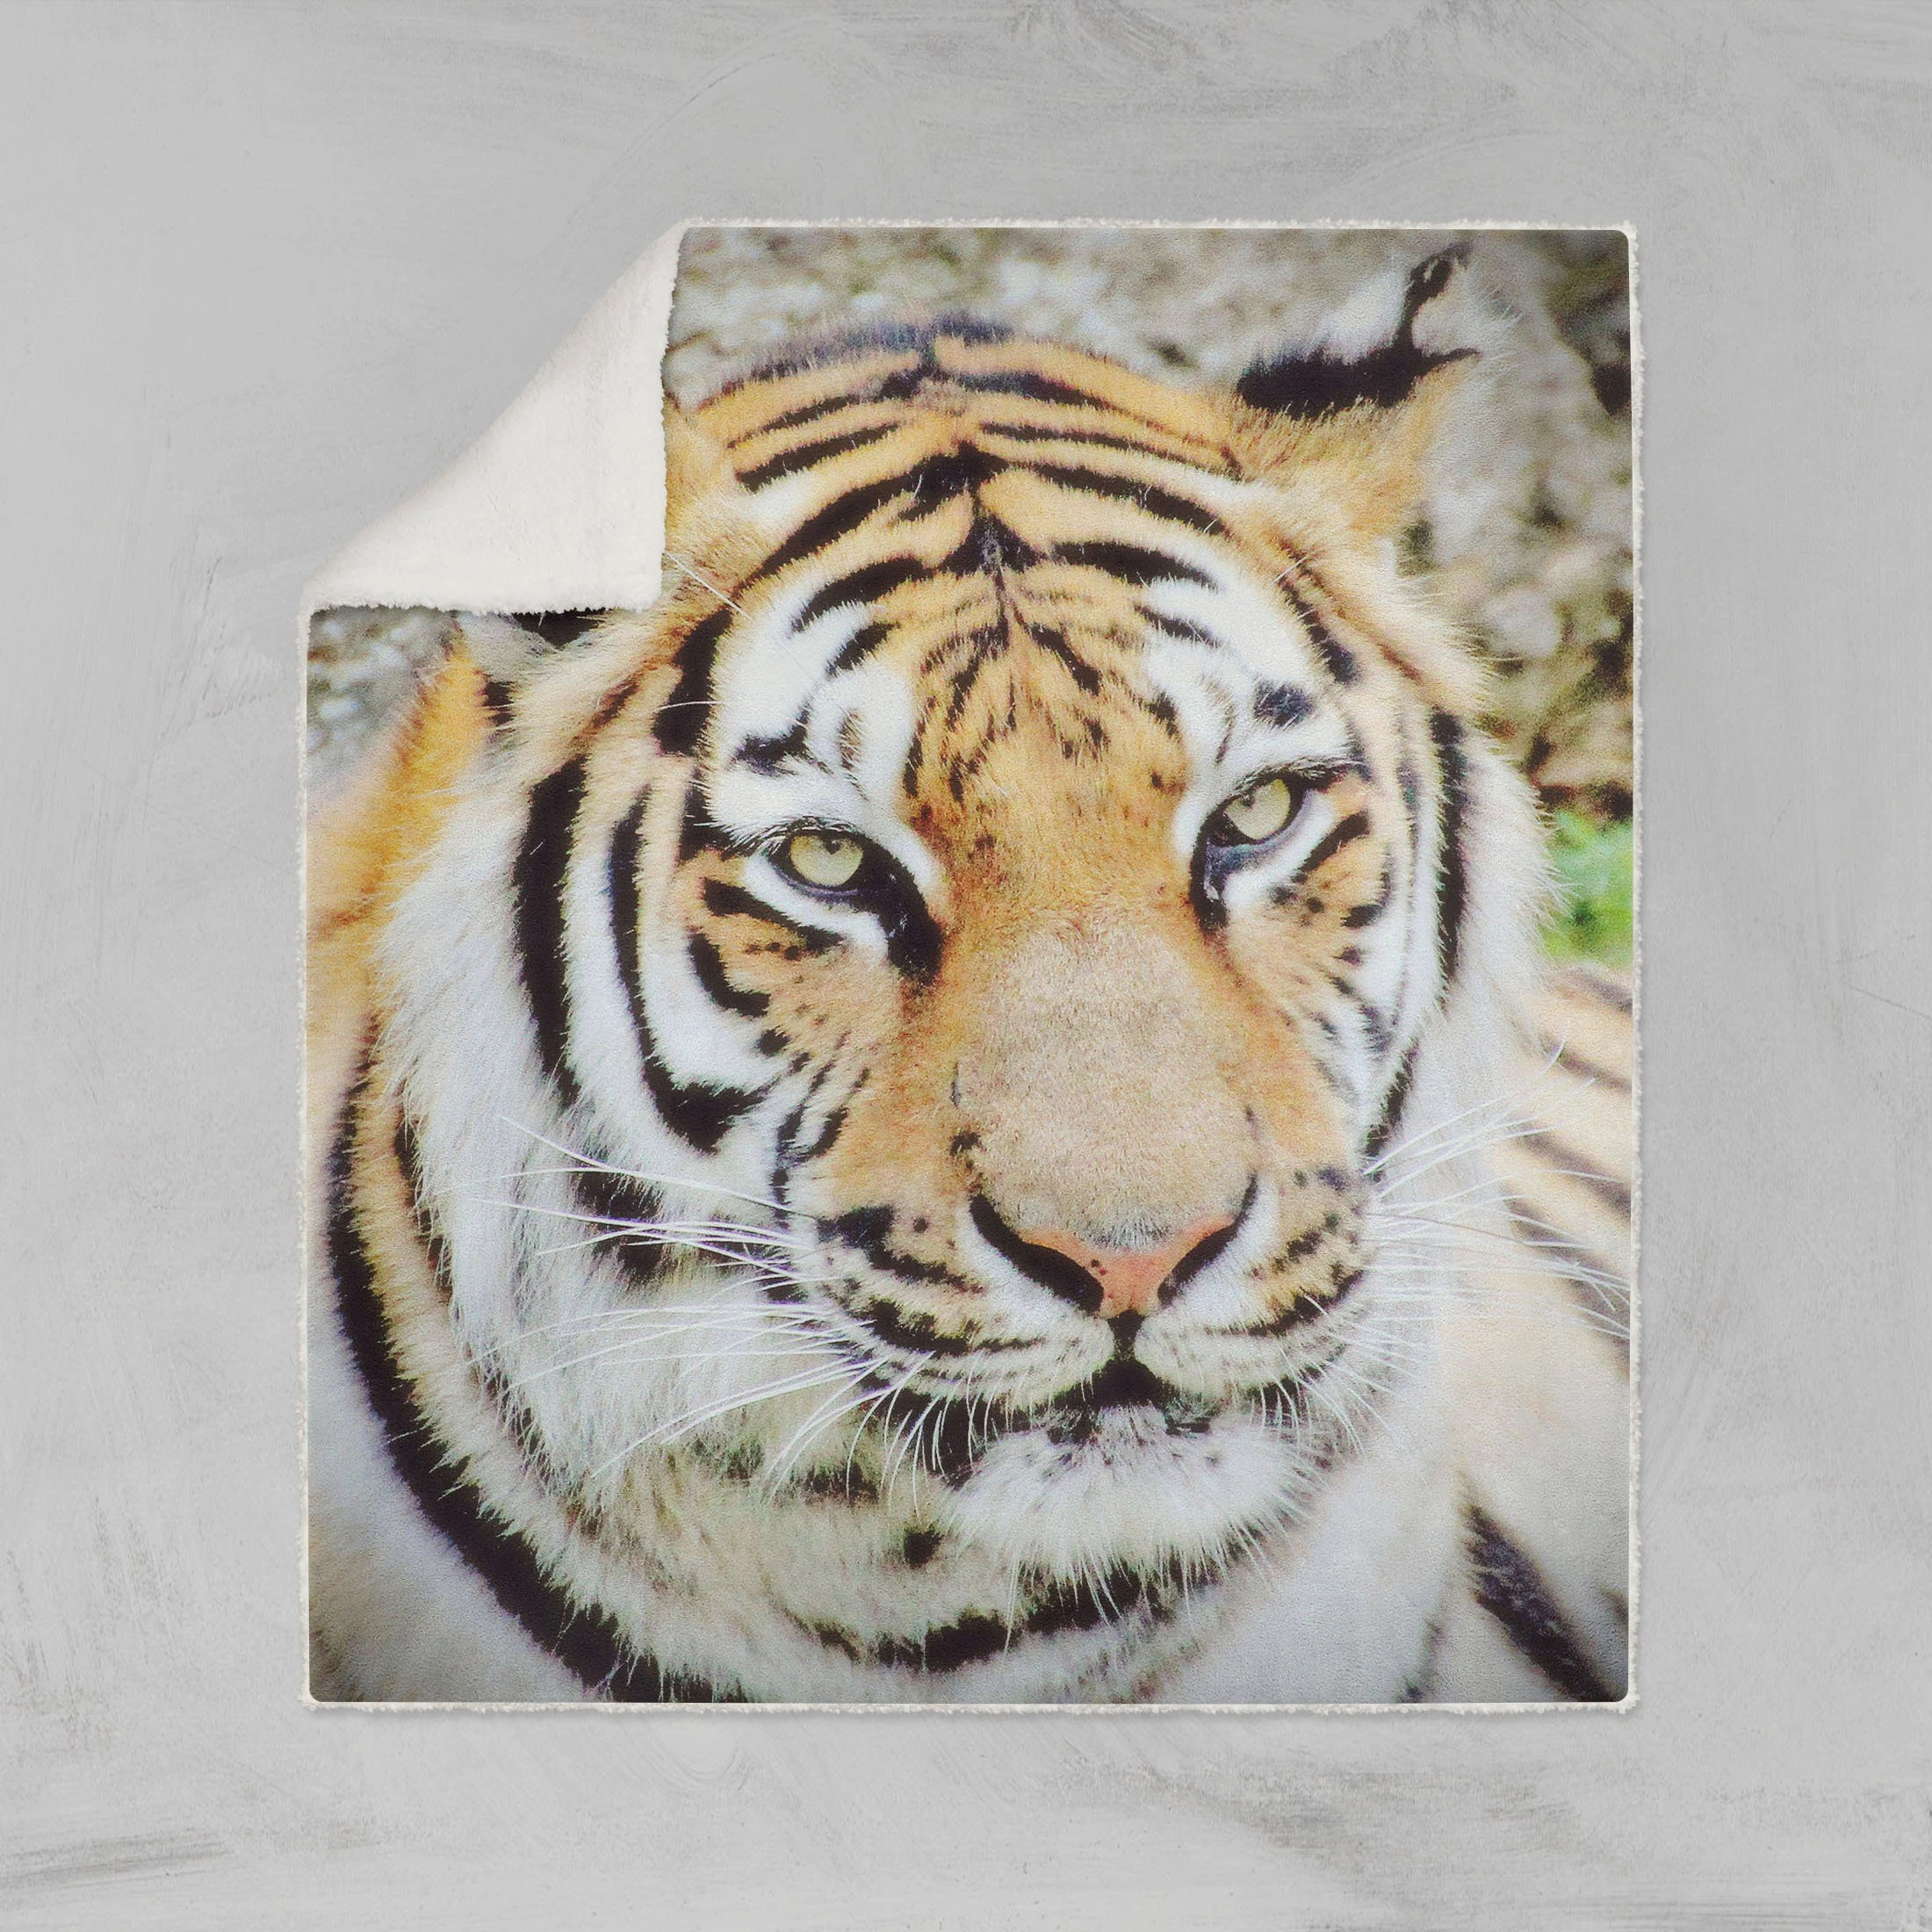 Tiger Bettwäsche Tiger Sherpa Fleece Decke Tiger Werfen Decke Fleecedecke Tiger Tiger Bettwäsche Couch Decke Sofa Decke